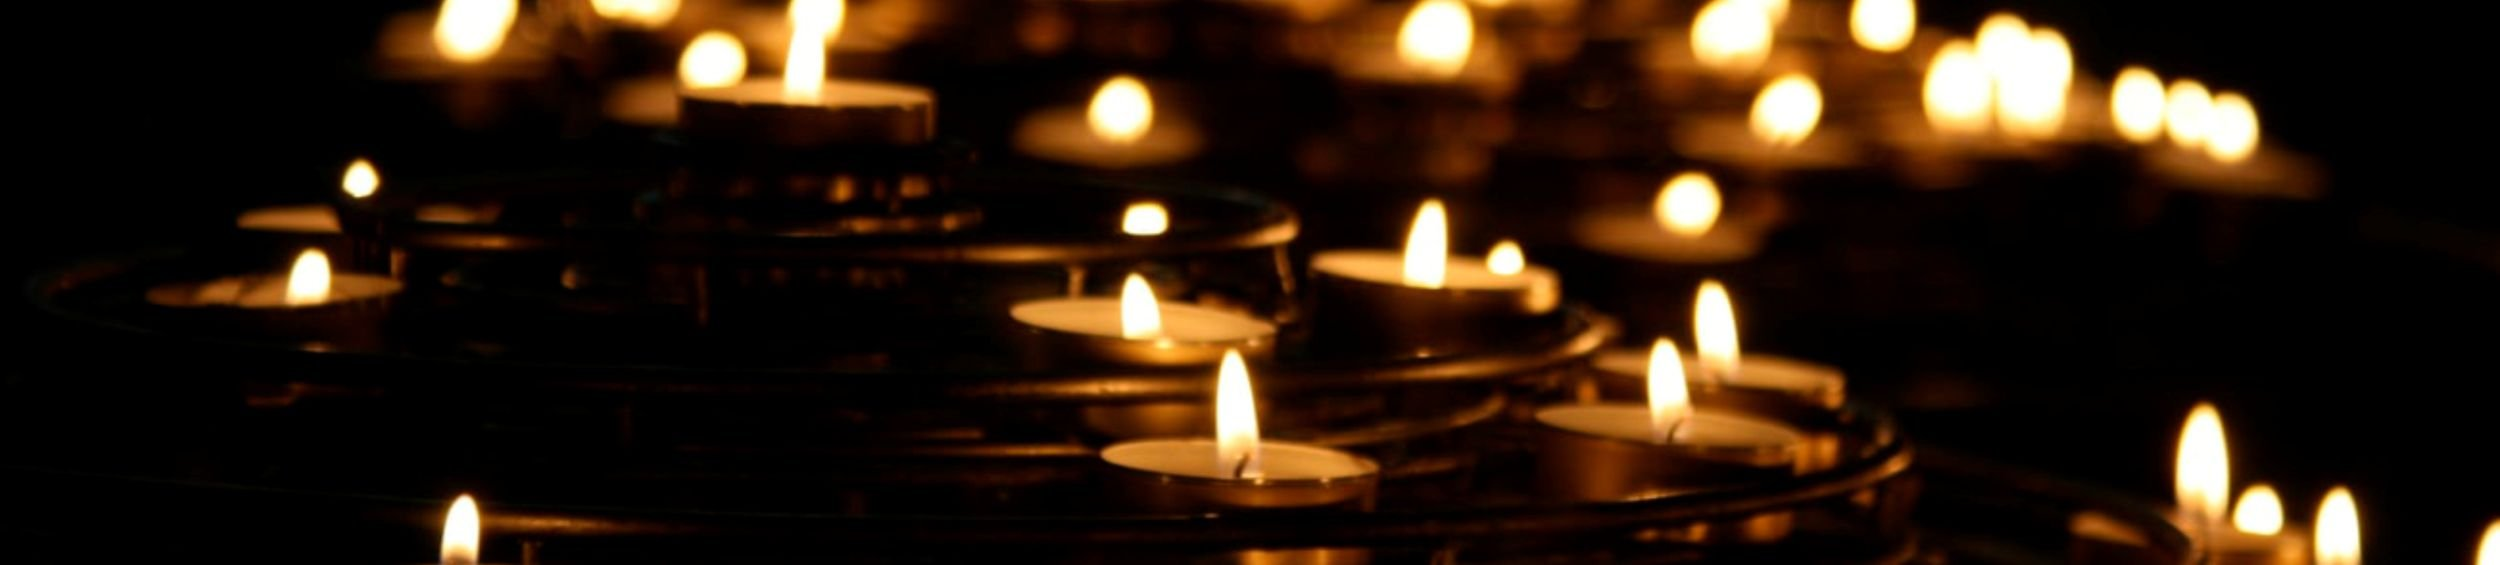 Candle Banner Image